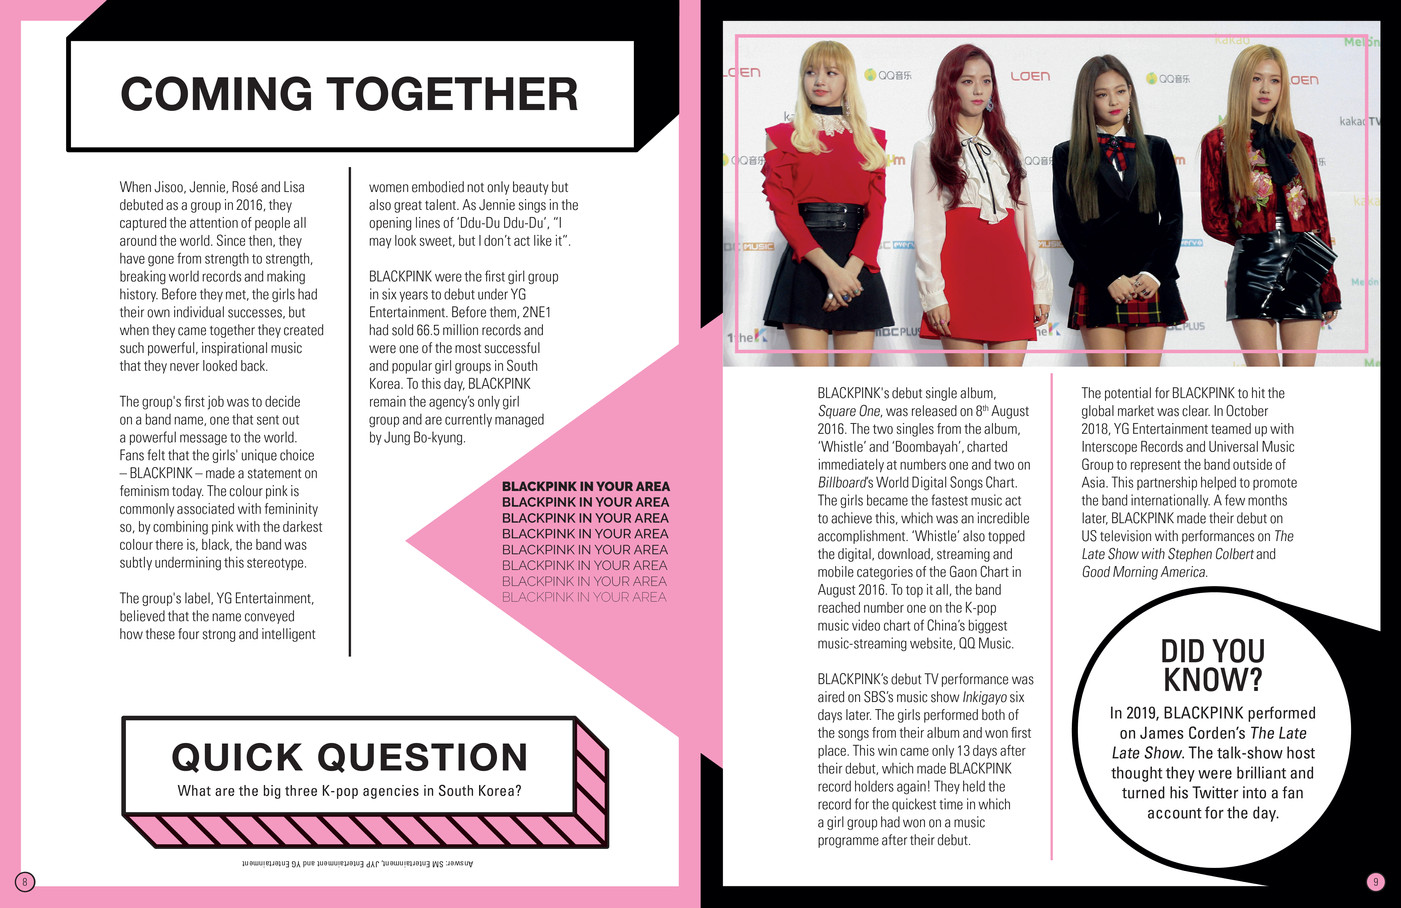 BLACKPINK: Queens of K-Pop: The Unauthorized Fan Guide